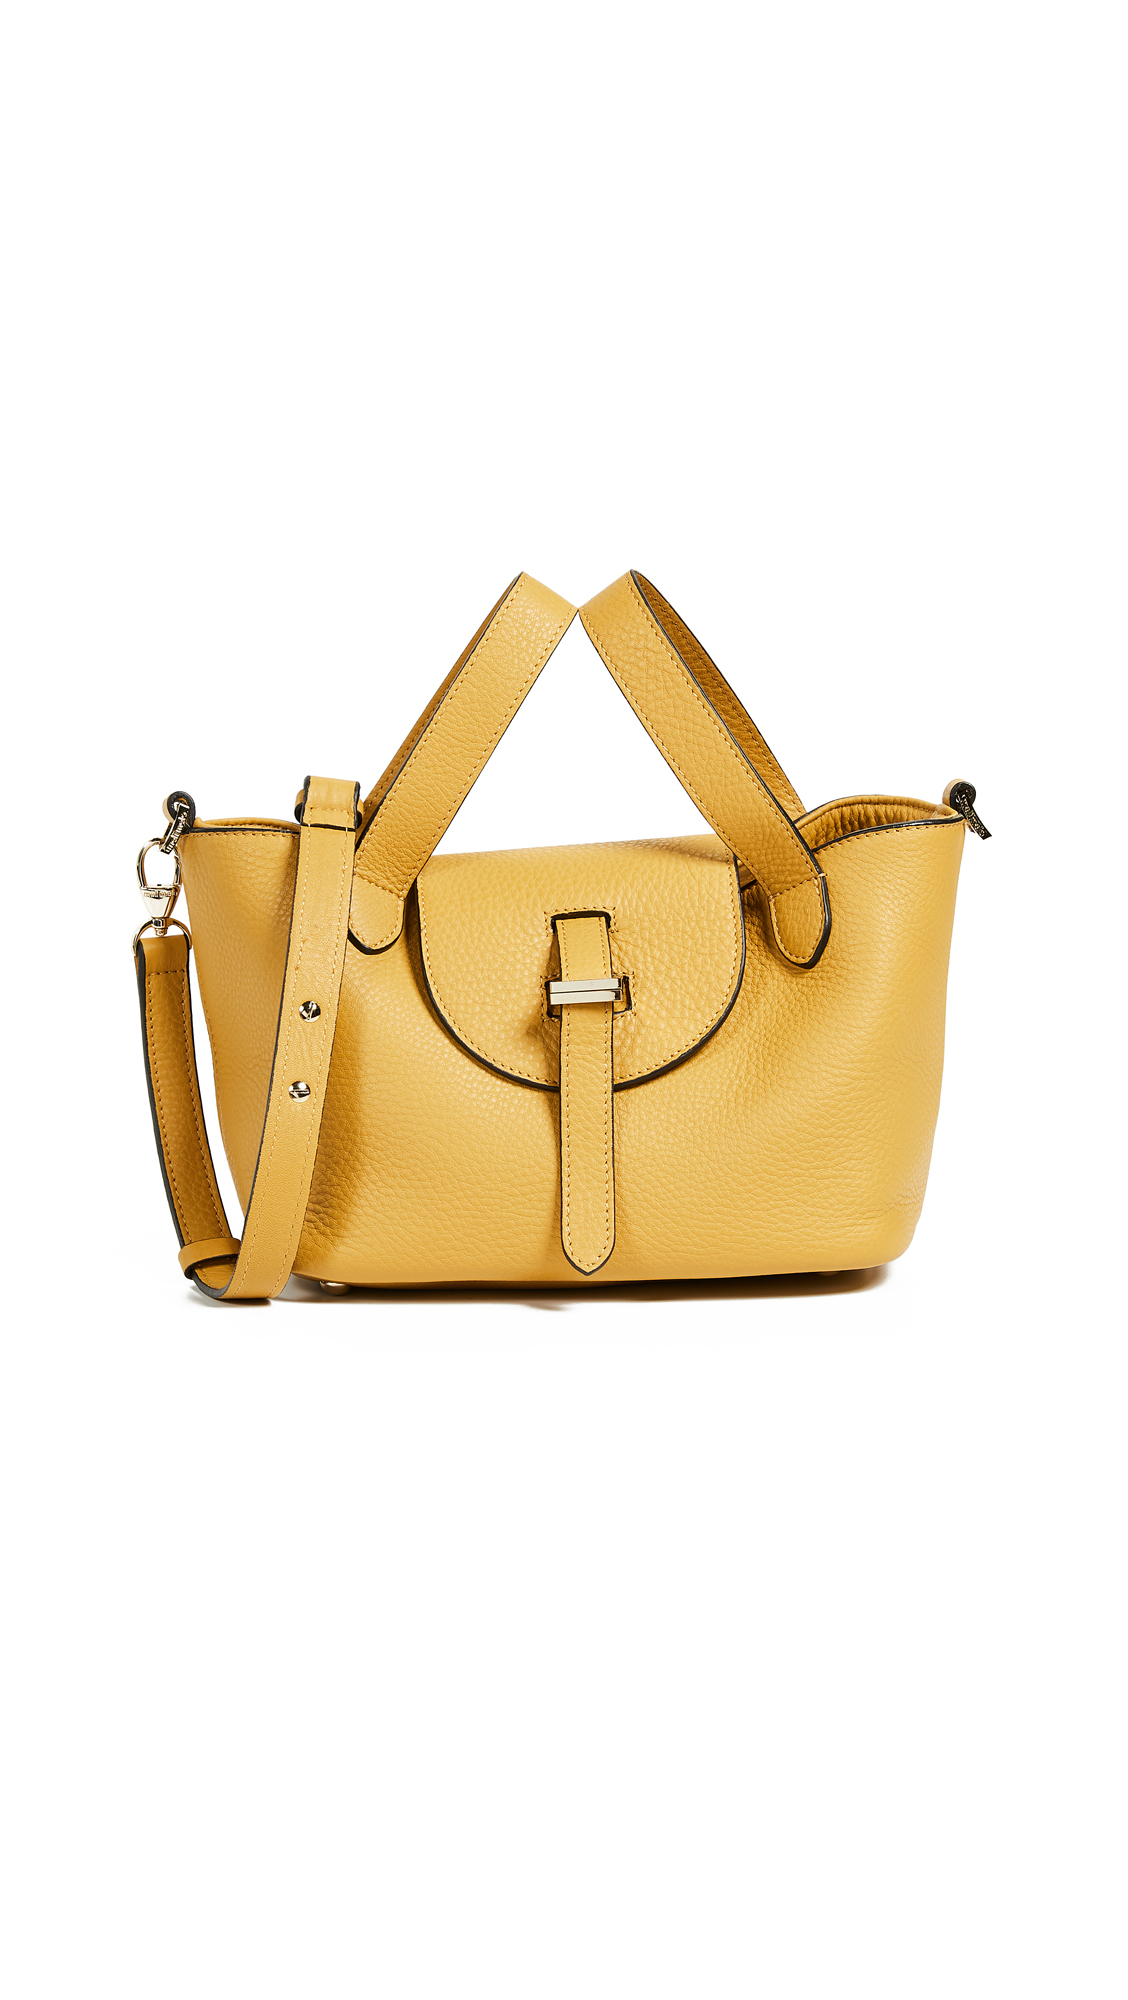 Thela Mini Tote, Golden Hour